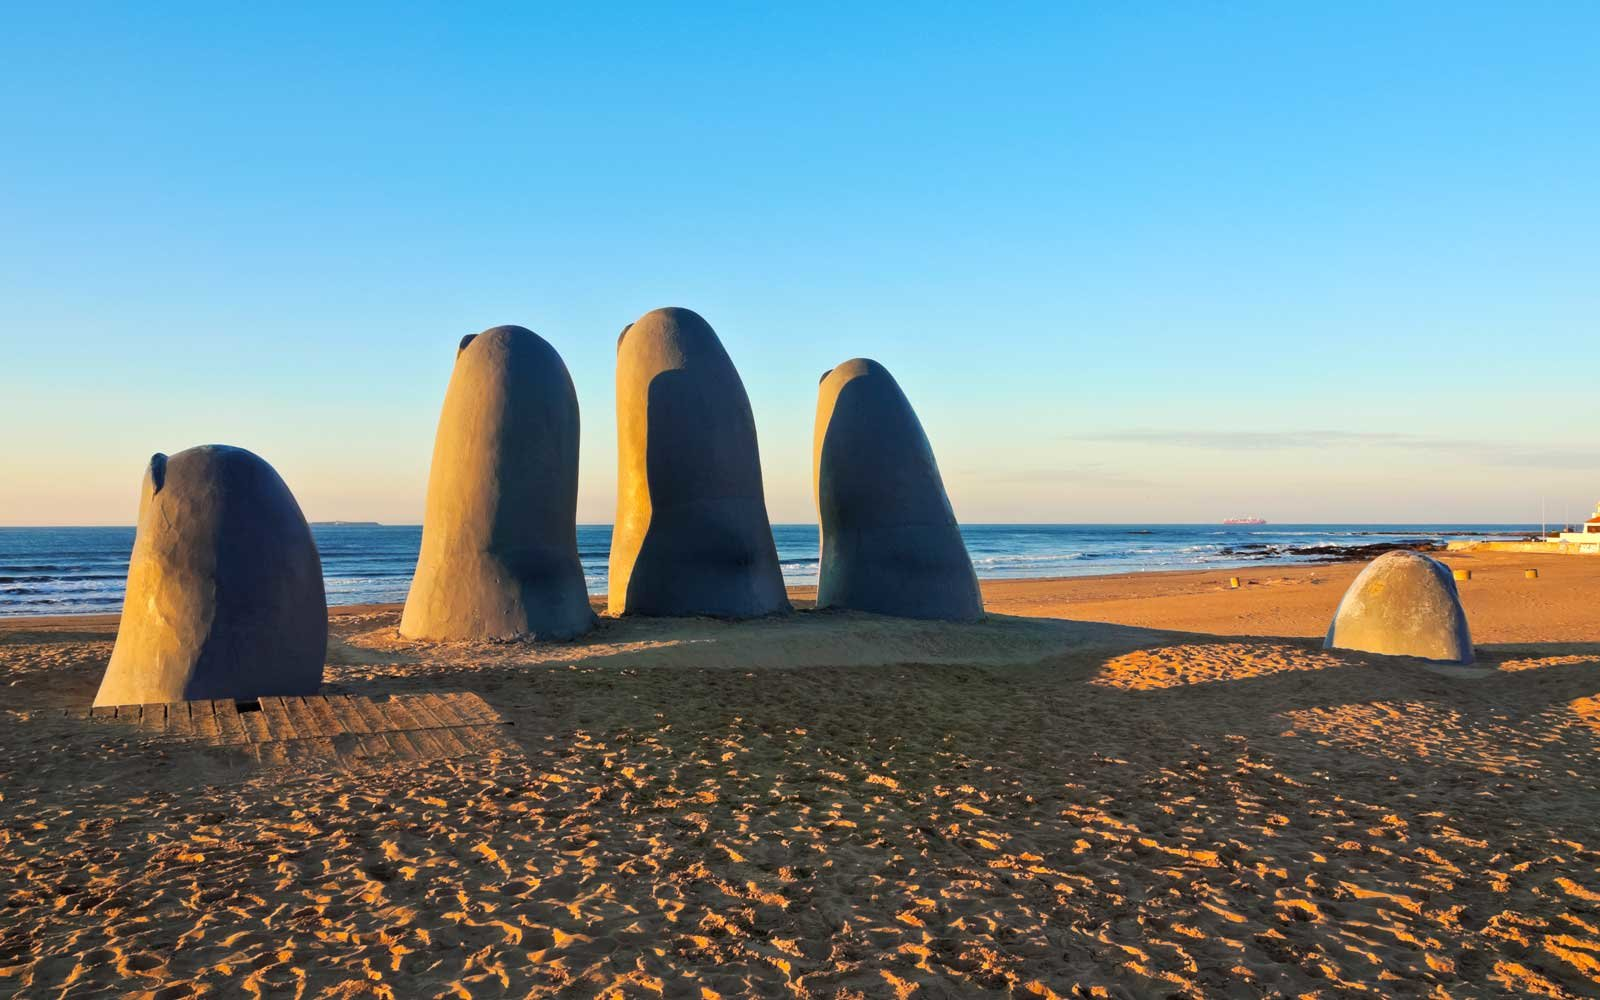 La Mano (The Hand), a sculpture by Chilean artist Mario Irarrazabal, Playa Brava, Punta del Este, Uruguay.